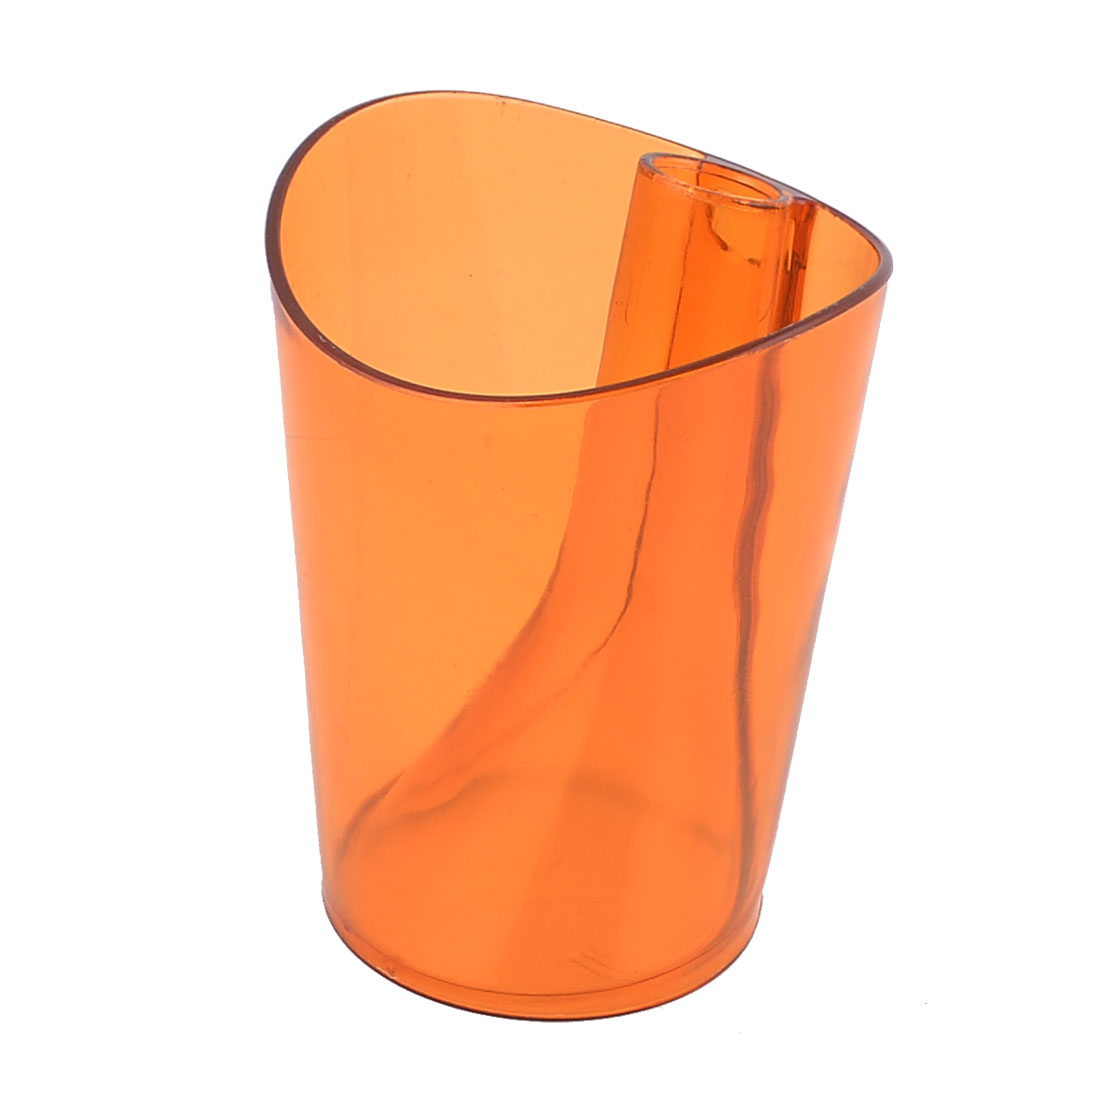 Household Amber Color Plastic Home Bathroom Gargle Toothbrush Cup 300ml